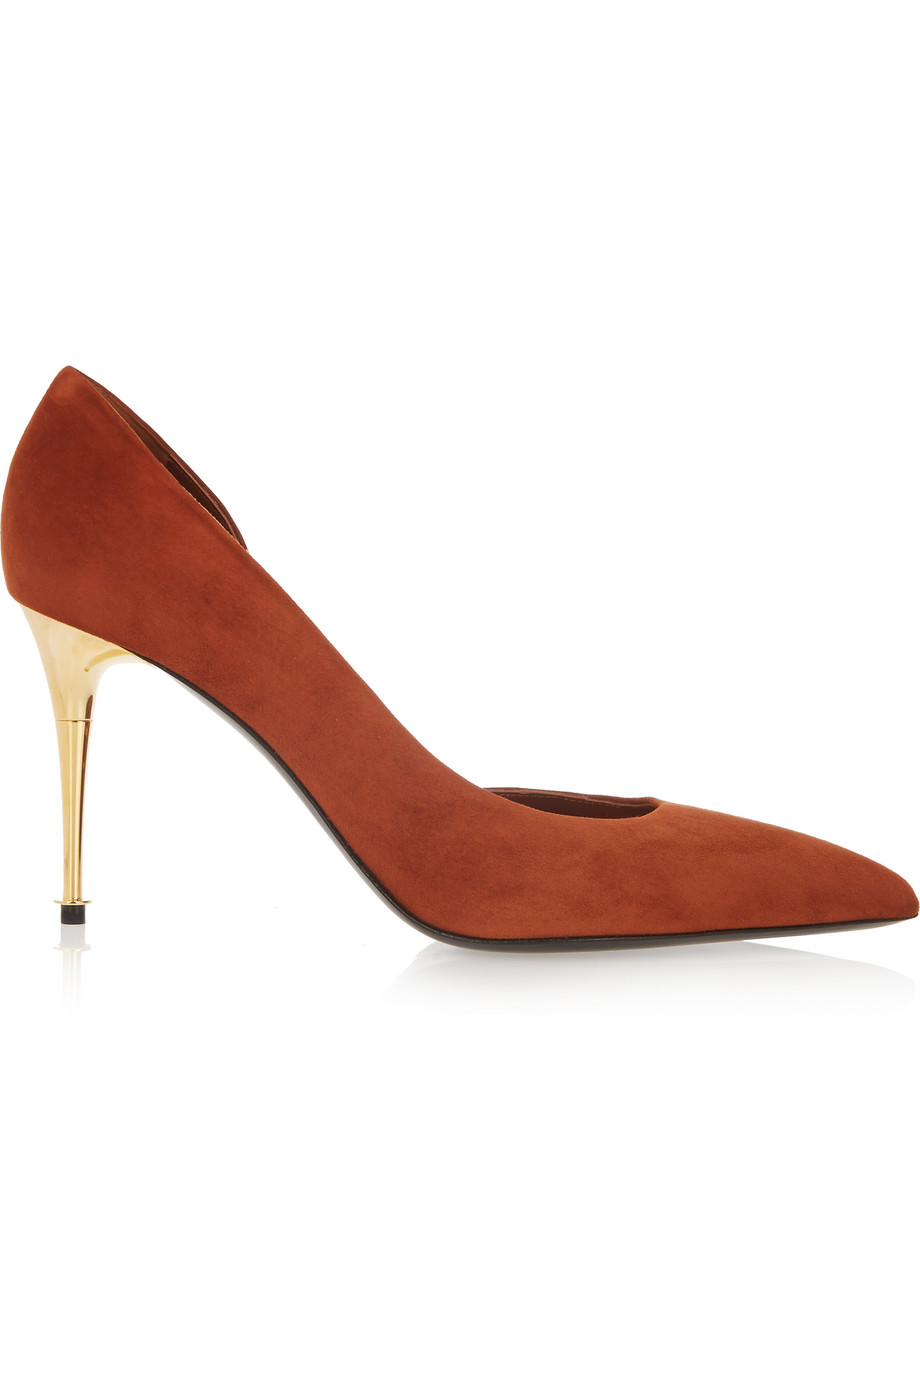 D'orsay Suede Pumps, Brick/Orange, Women's US Size: 4.5, Size: 35